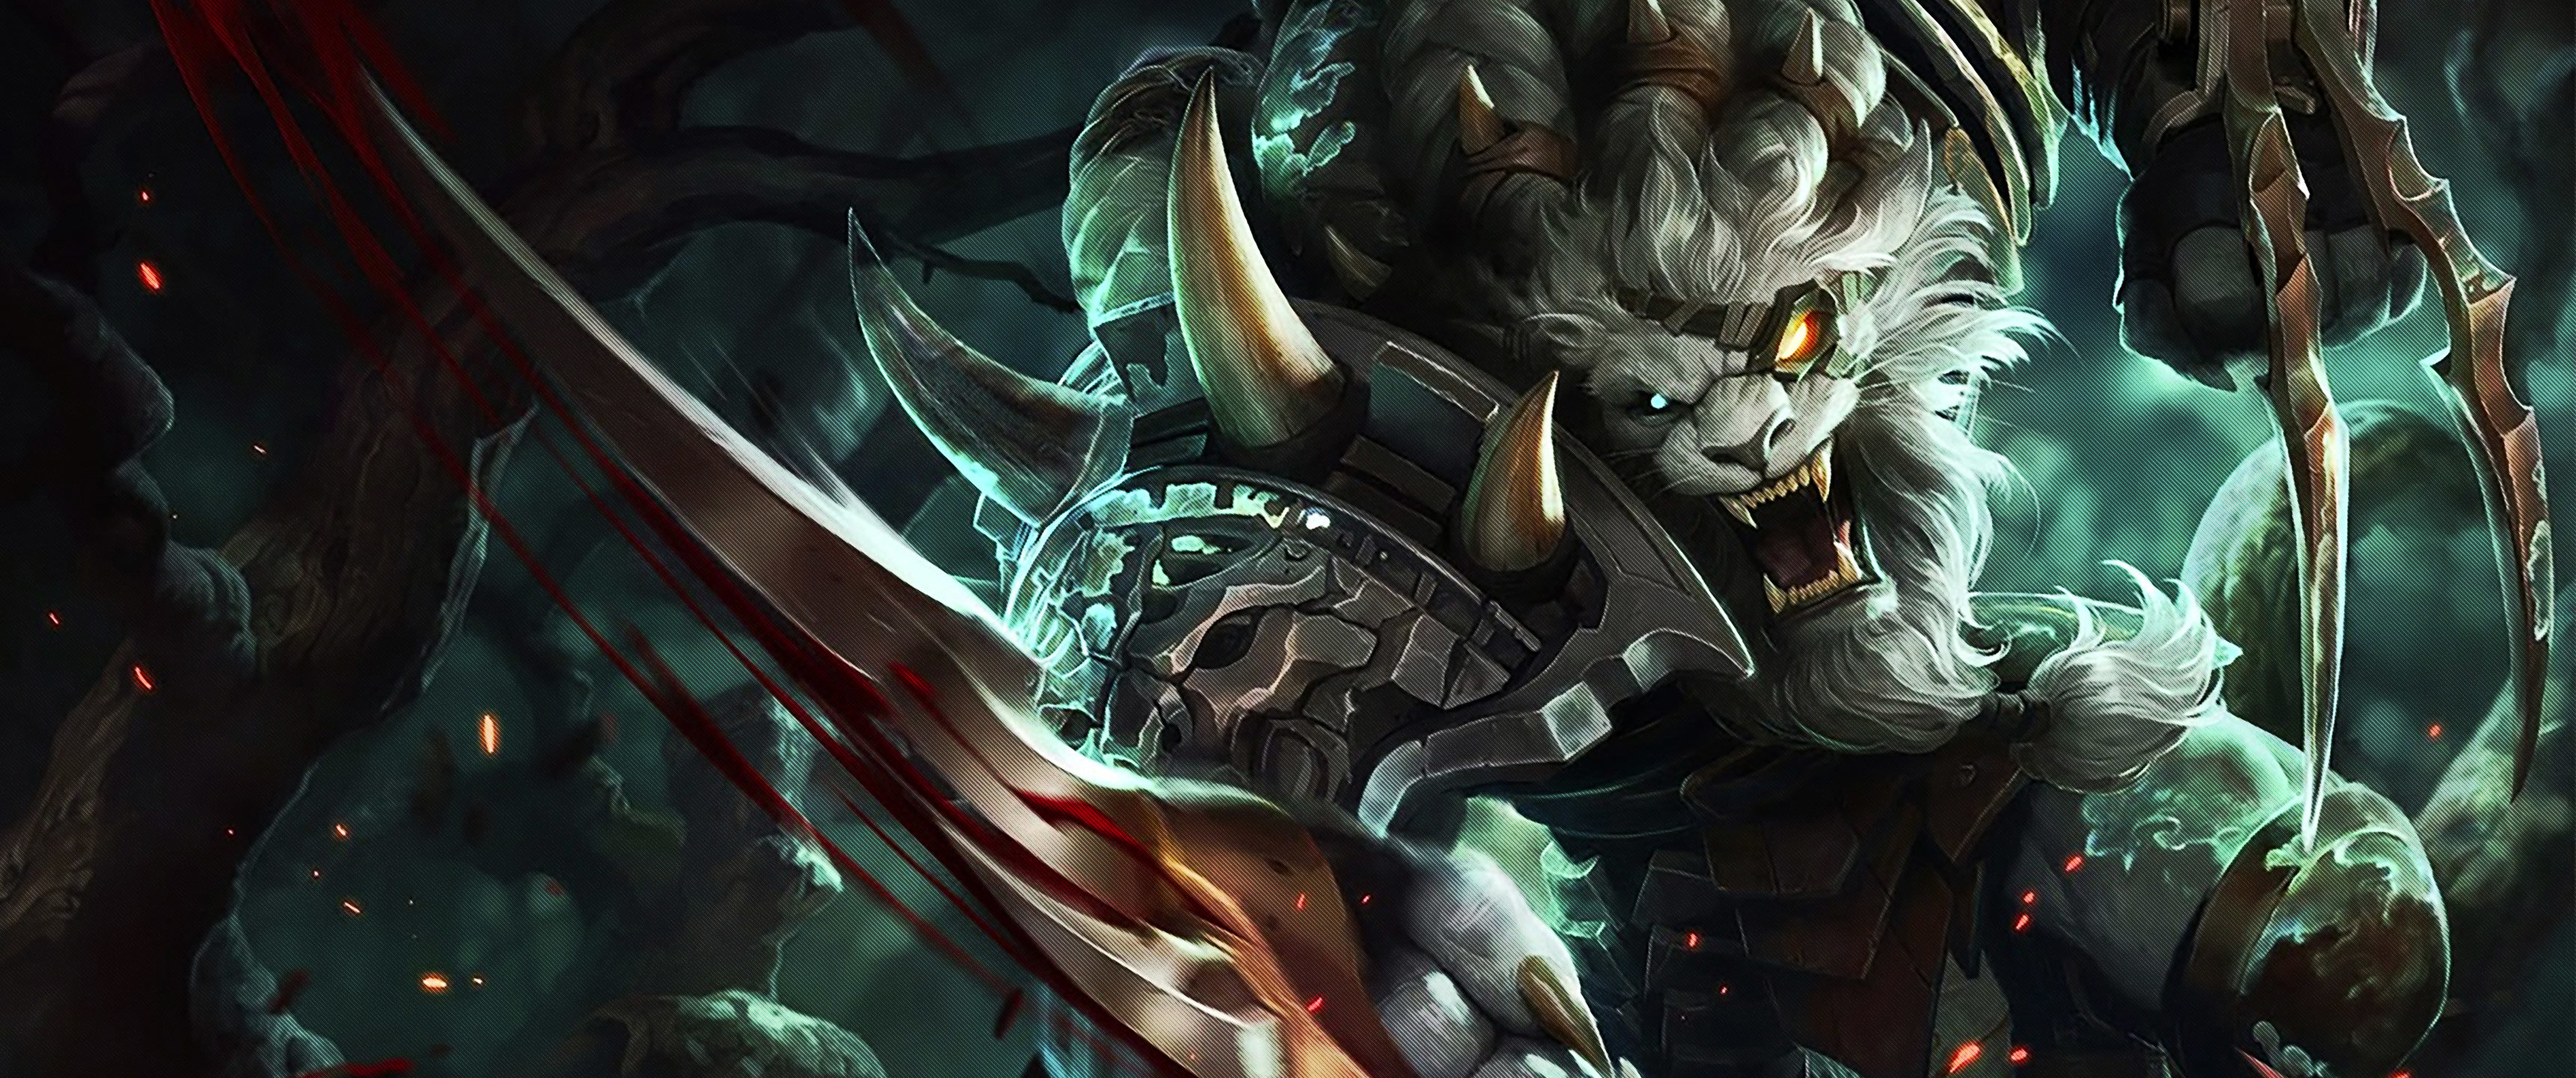 Awesome Rengar (League Of Legends) free wallpaper ID:171594 for hd 3440x1440 computer